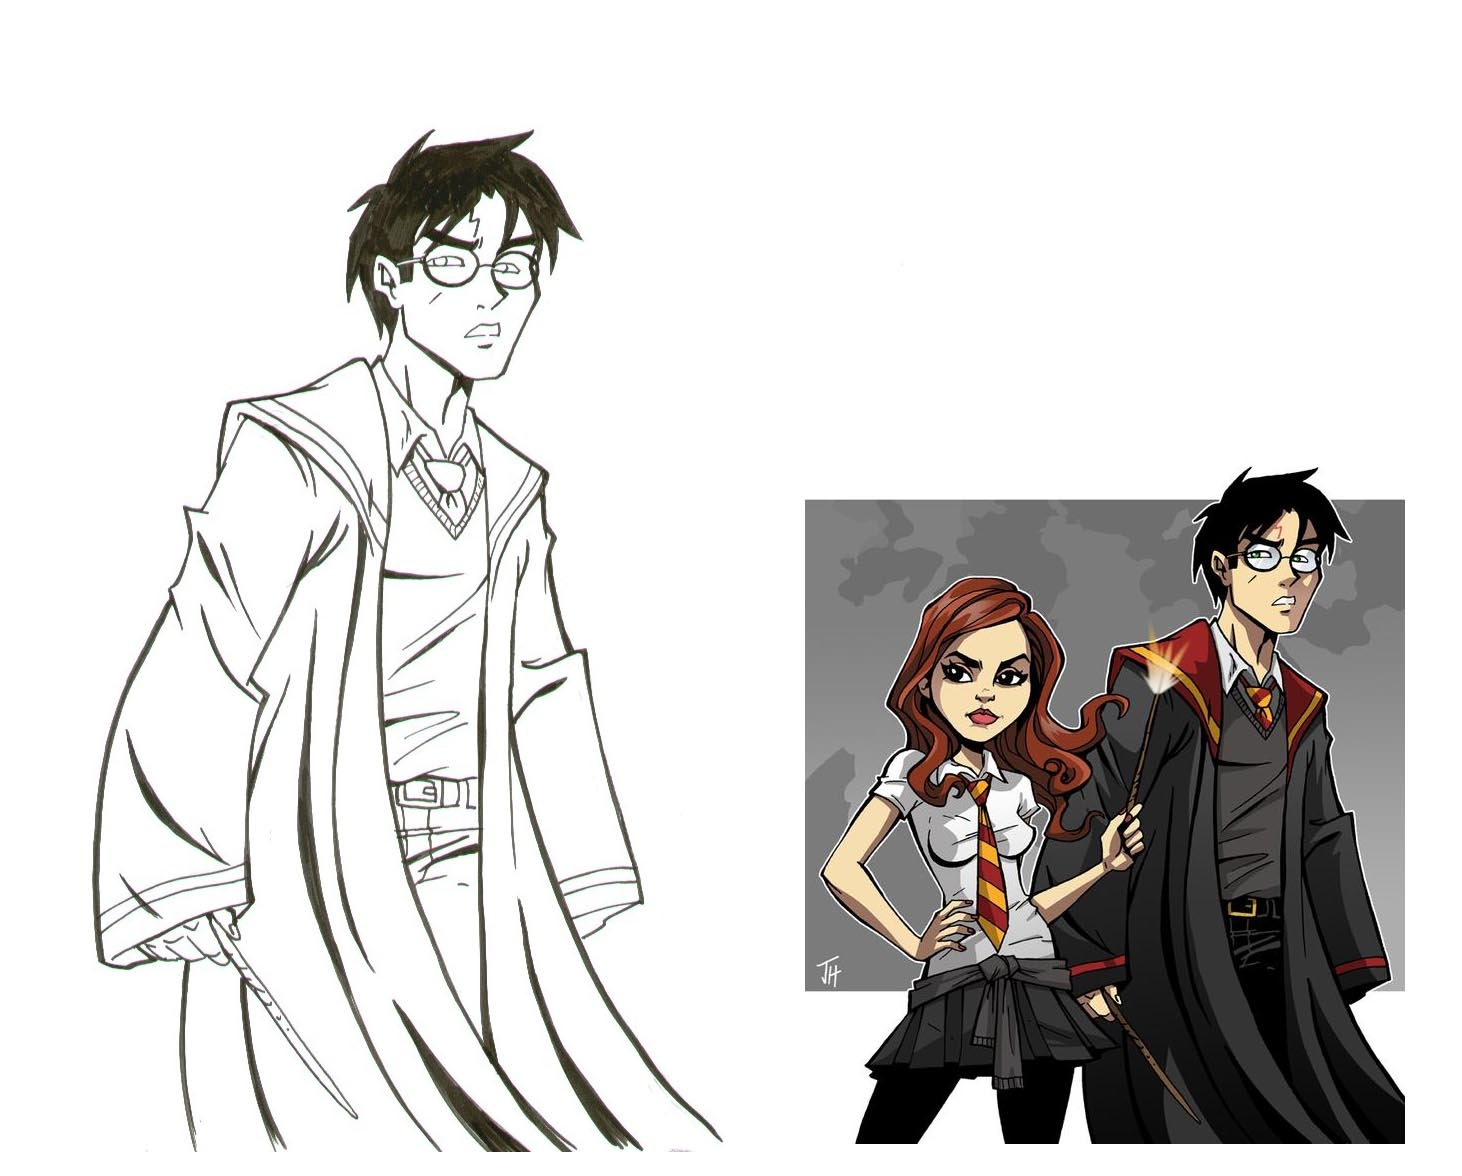 Harry Potter Josh Howard In Laura Mc S Misc Movies Tv Comic Art Gallery Room Biografia filmografia critica premi articoli e news trailer. comic art fans